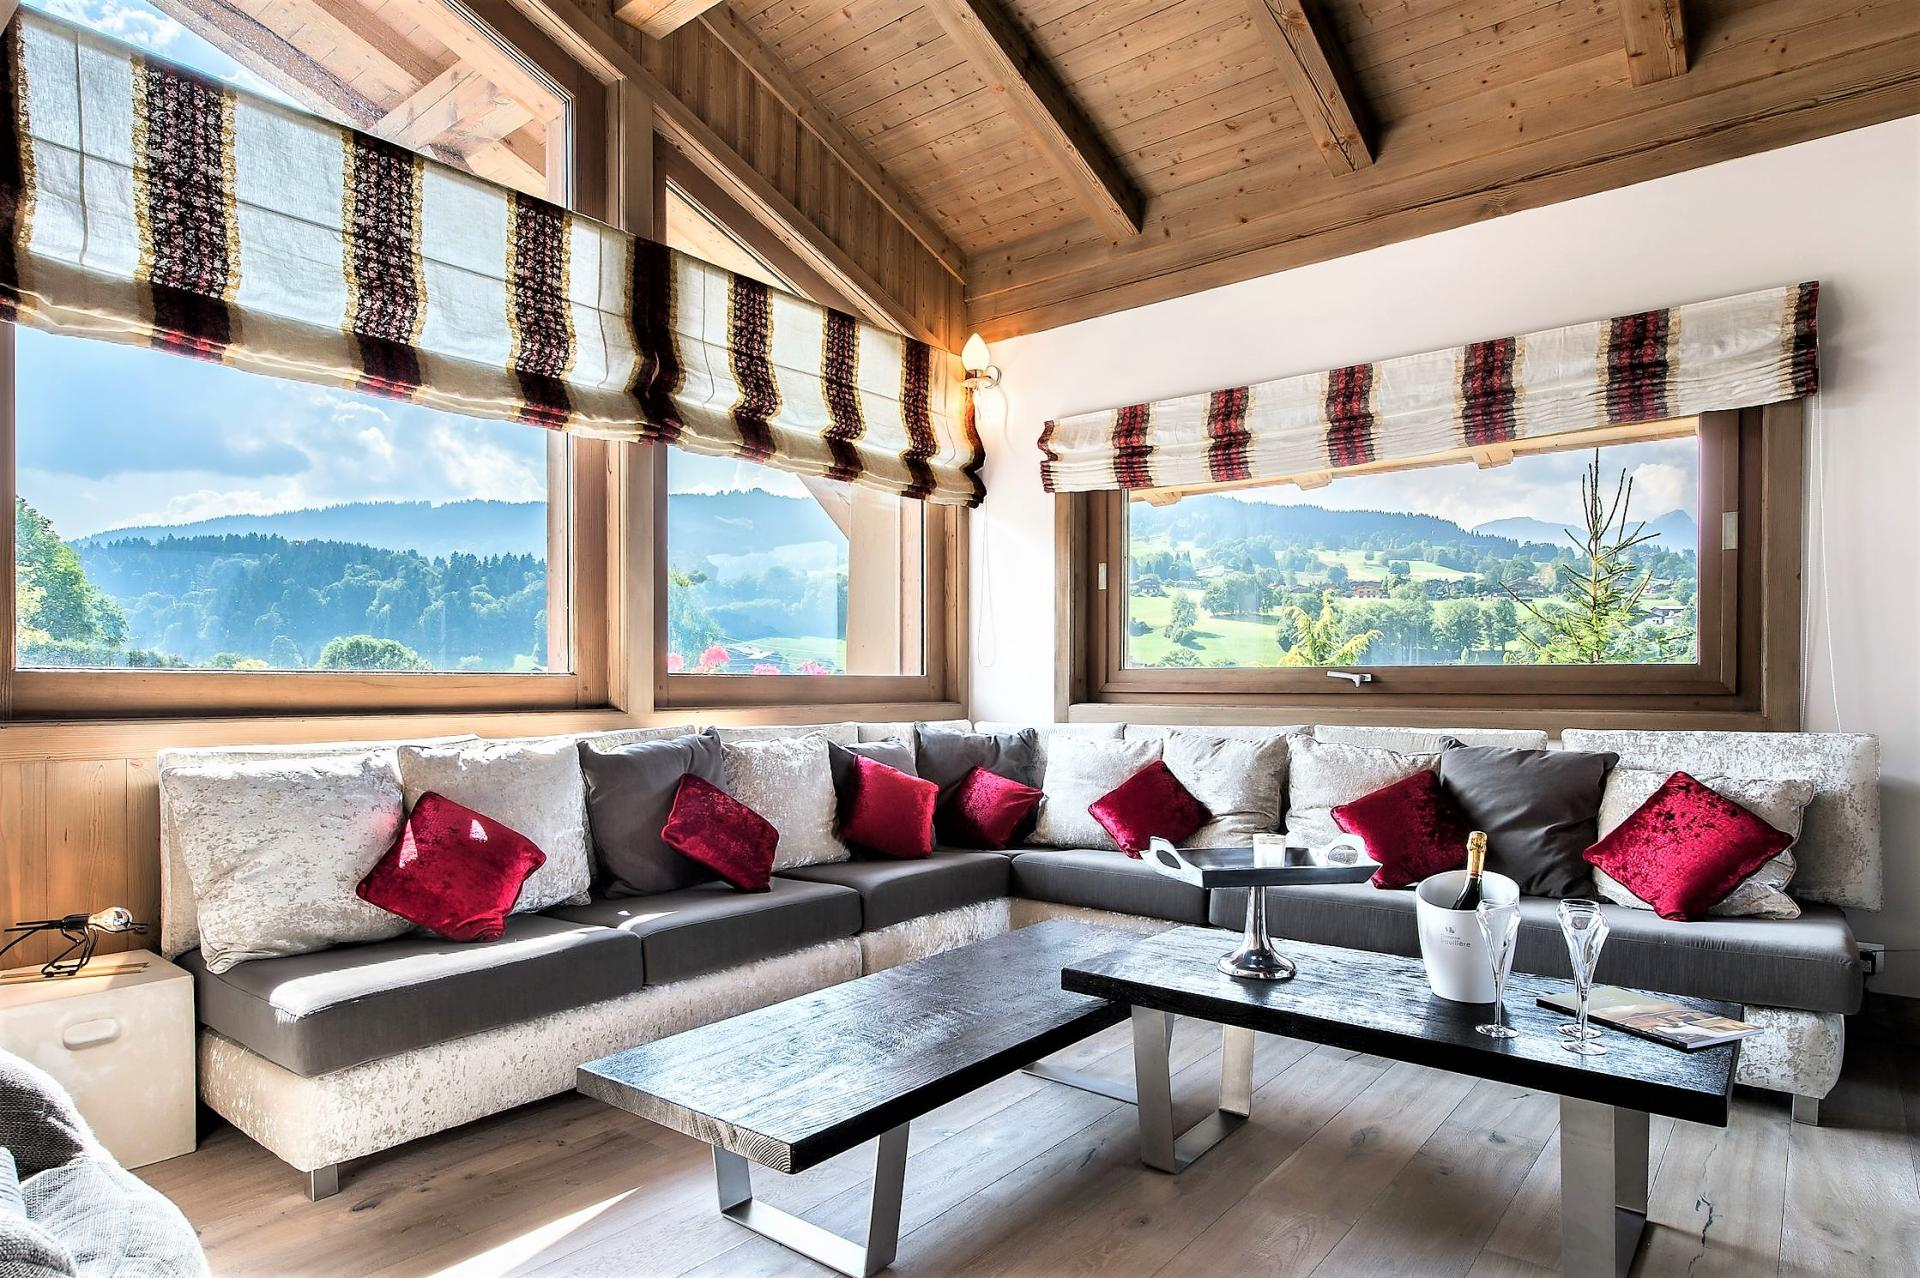 THE LOUNGE AND ITS BEAUTIFUL MOUNTAINS VIEWS IN A CHALET IN FRENCH ALPS